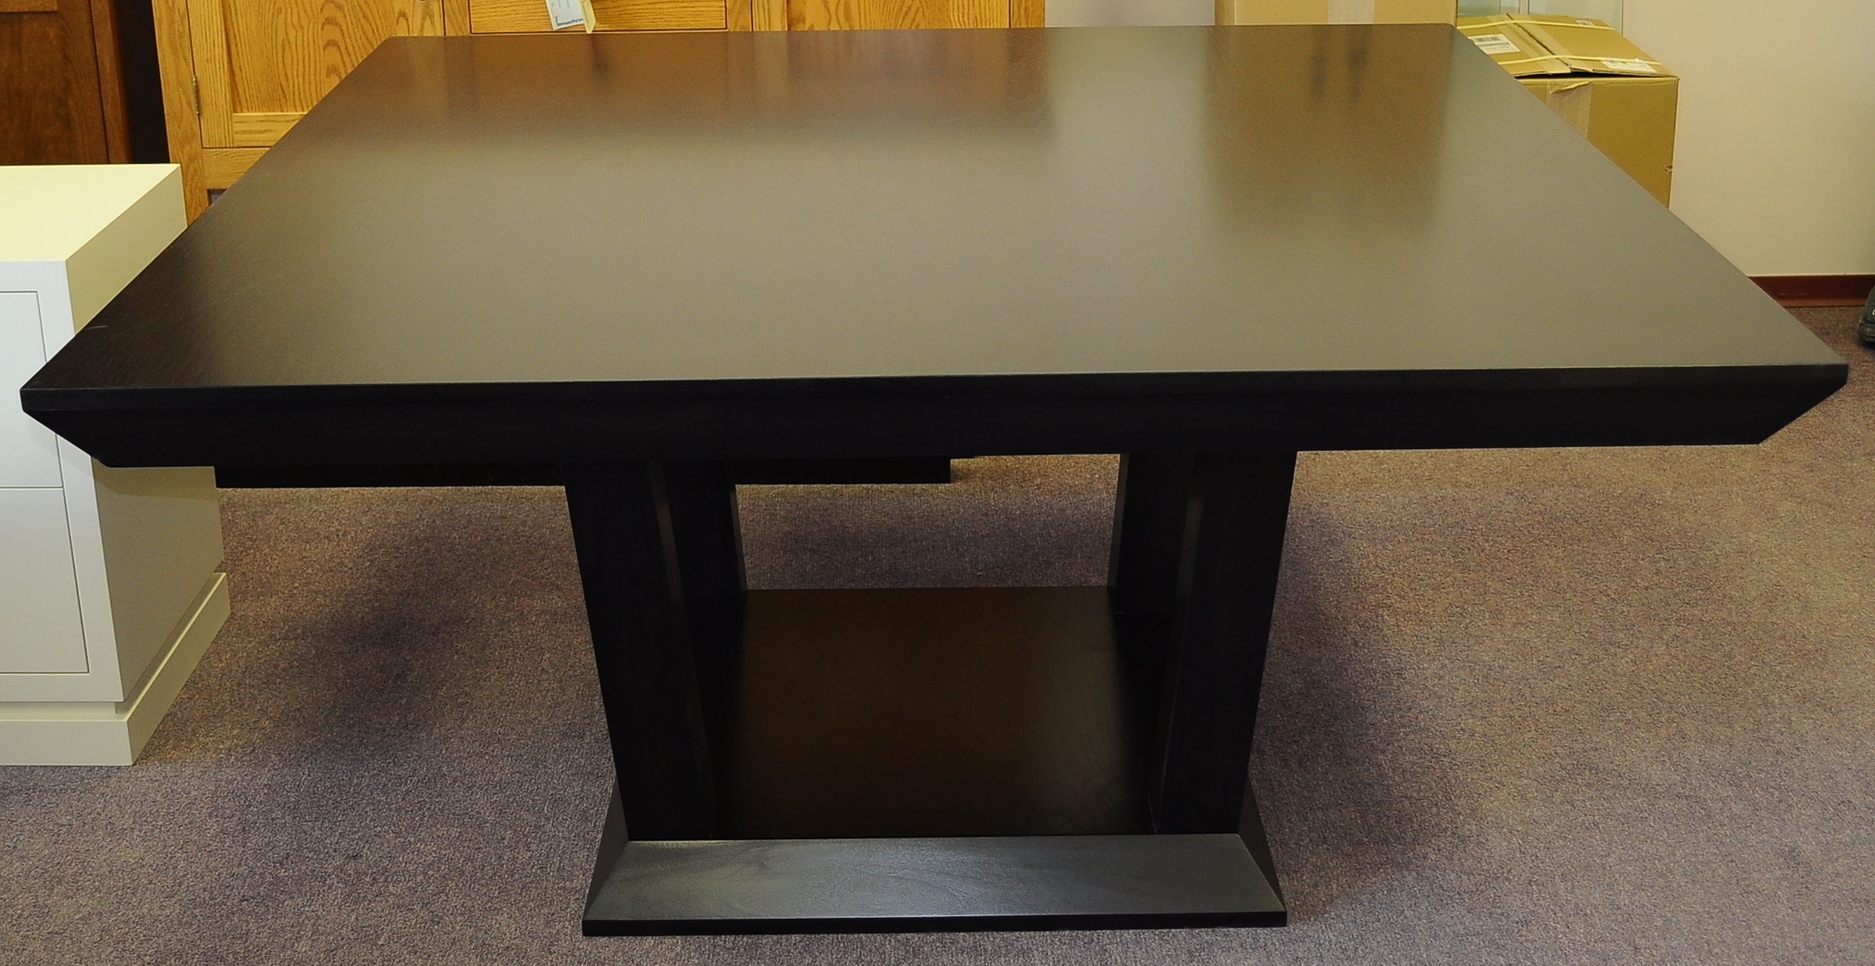 transitional-style-black-square-dining-table.JPG